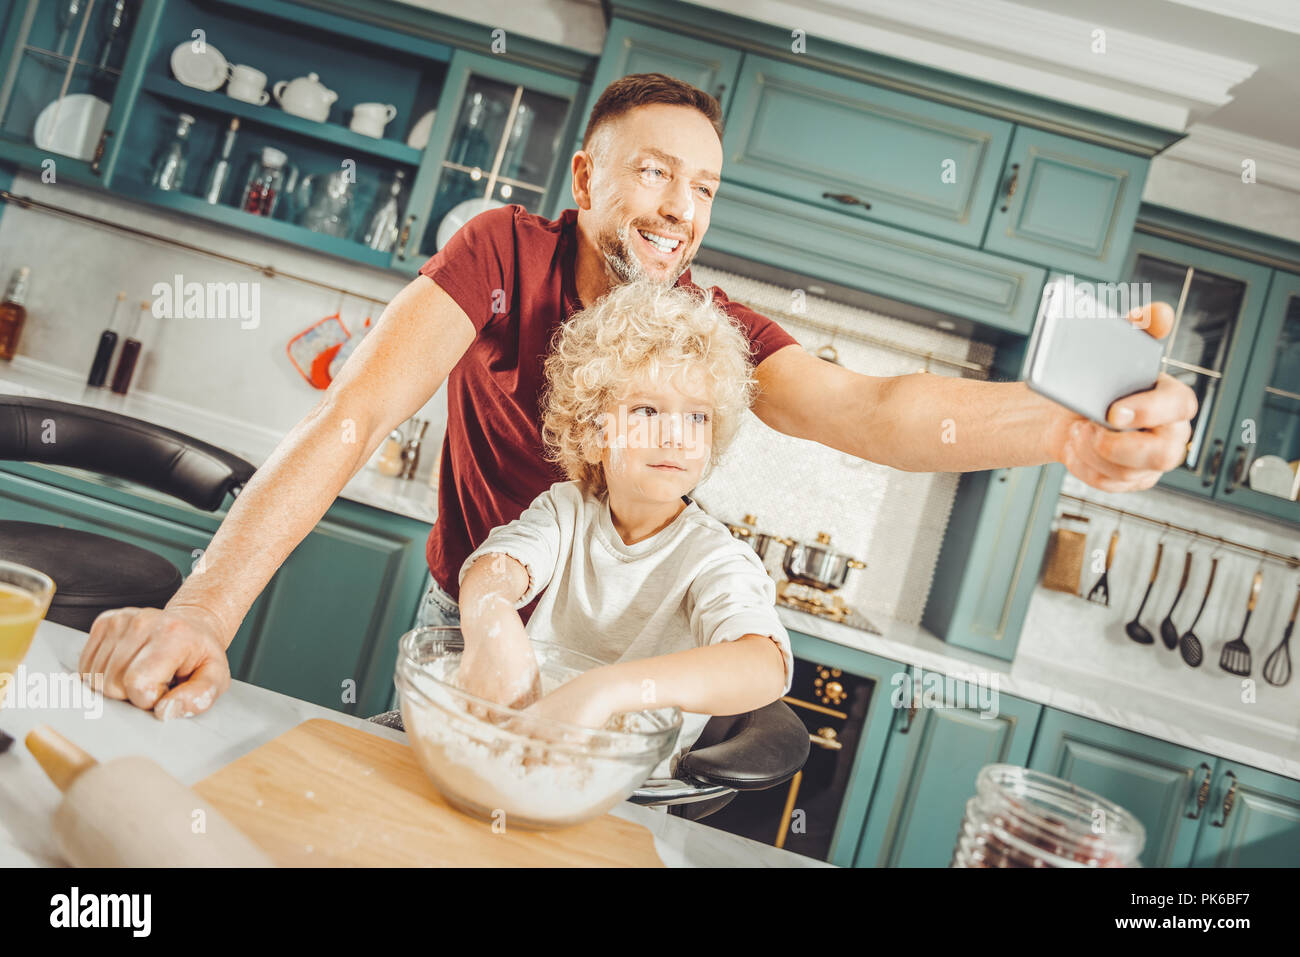 Father and son posing for selfie while making breakfast - Stock Image